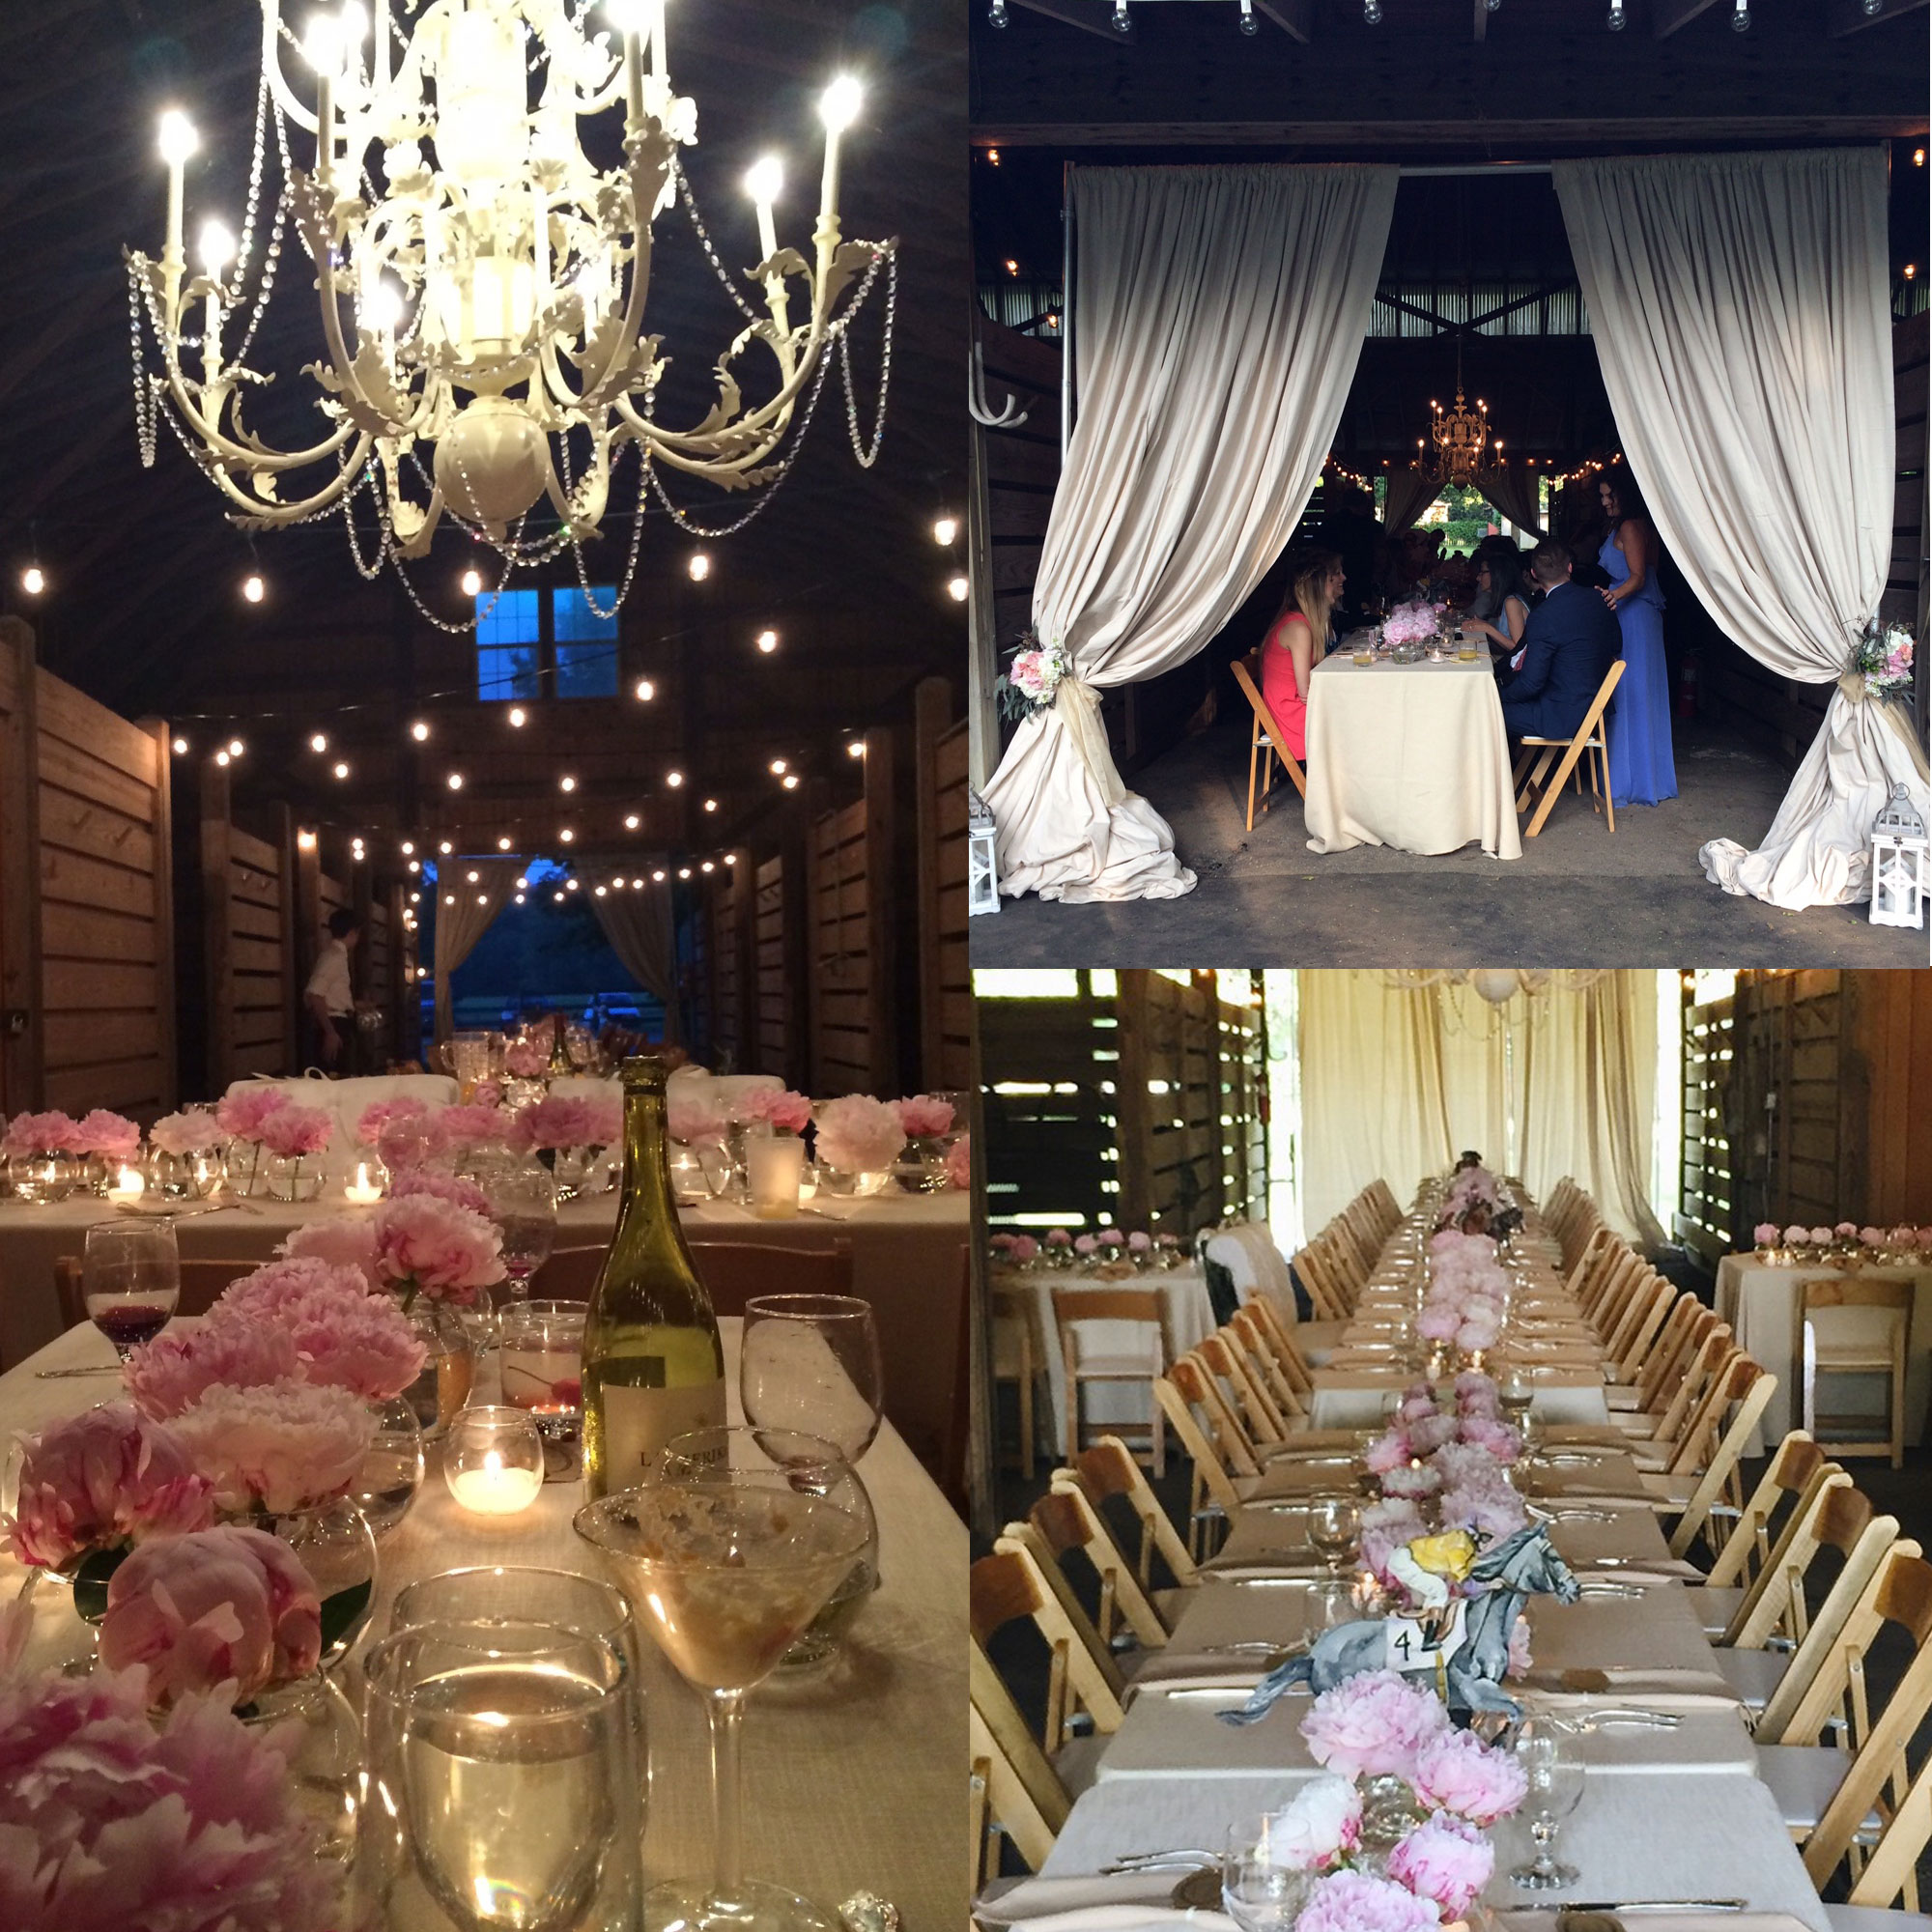 Polo Barns at Saxony, Farm Wedding, Barn Reception, Farm Tables, Peonies, Chandelier in the Barn!